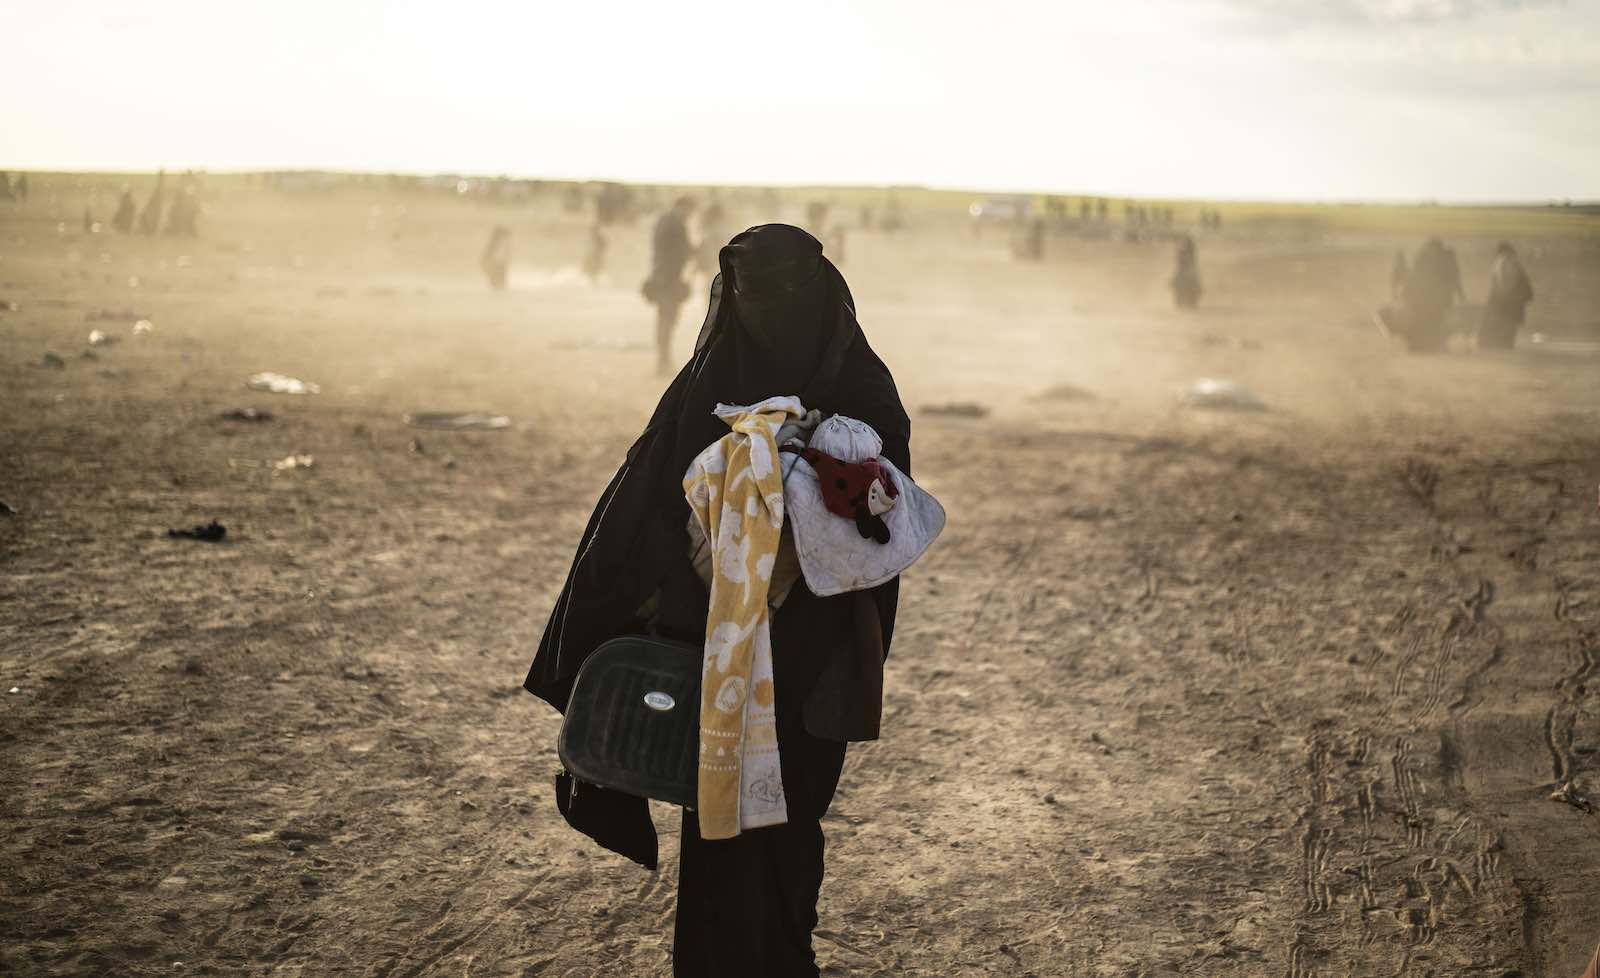 A woman evacuated from the Islamic State's holdout of Baghouz arrives at a screening area held by Kurdish-led Syrian Democratic Forces, Deir Ezzor province, Syria, March 2019. (Photo: Delil Souleiman/AFP/Getty Images)